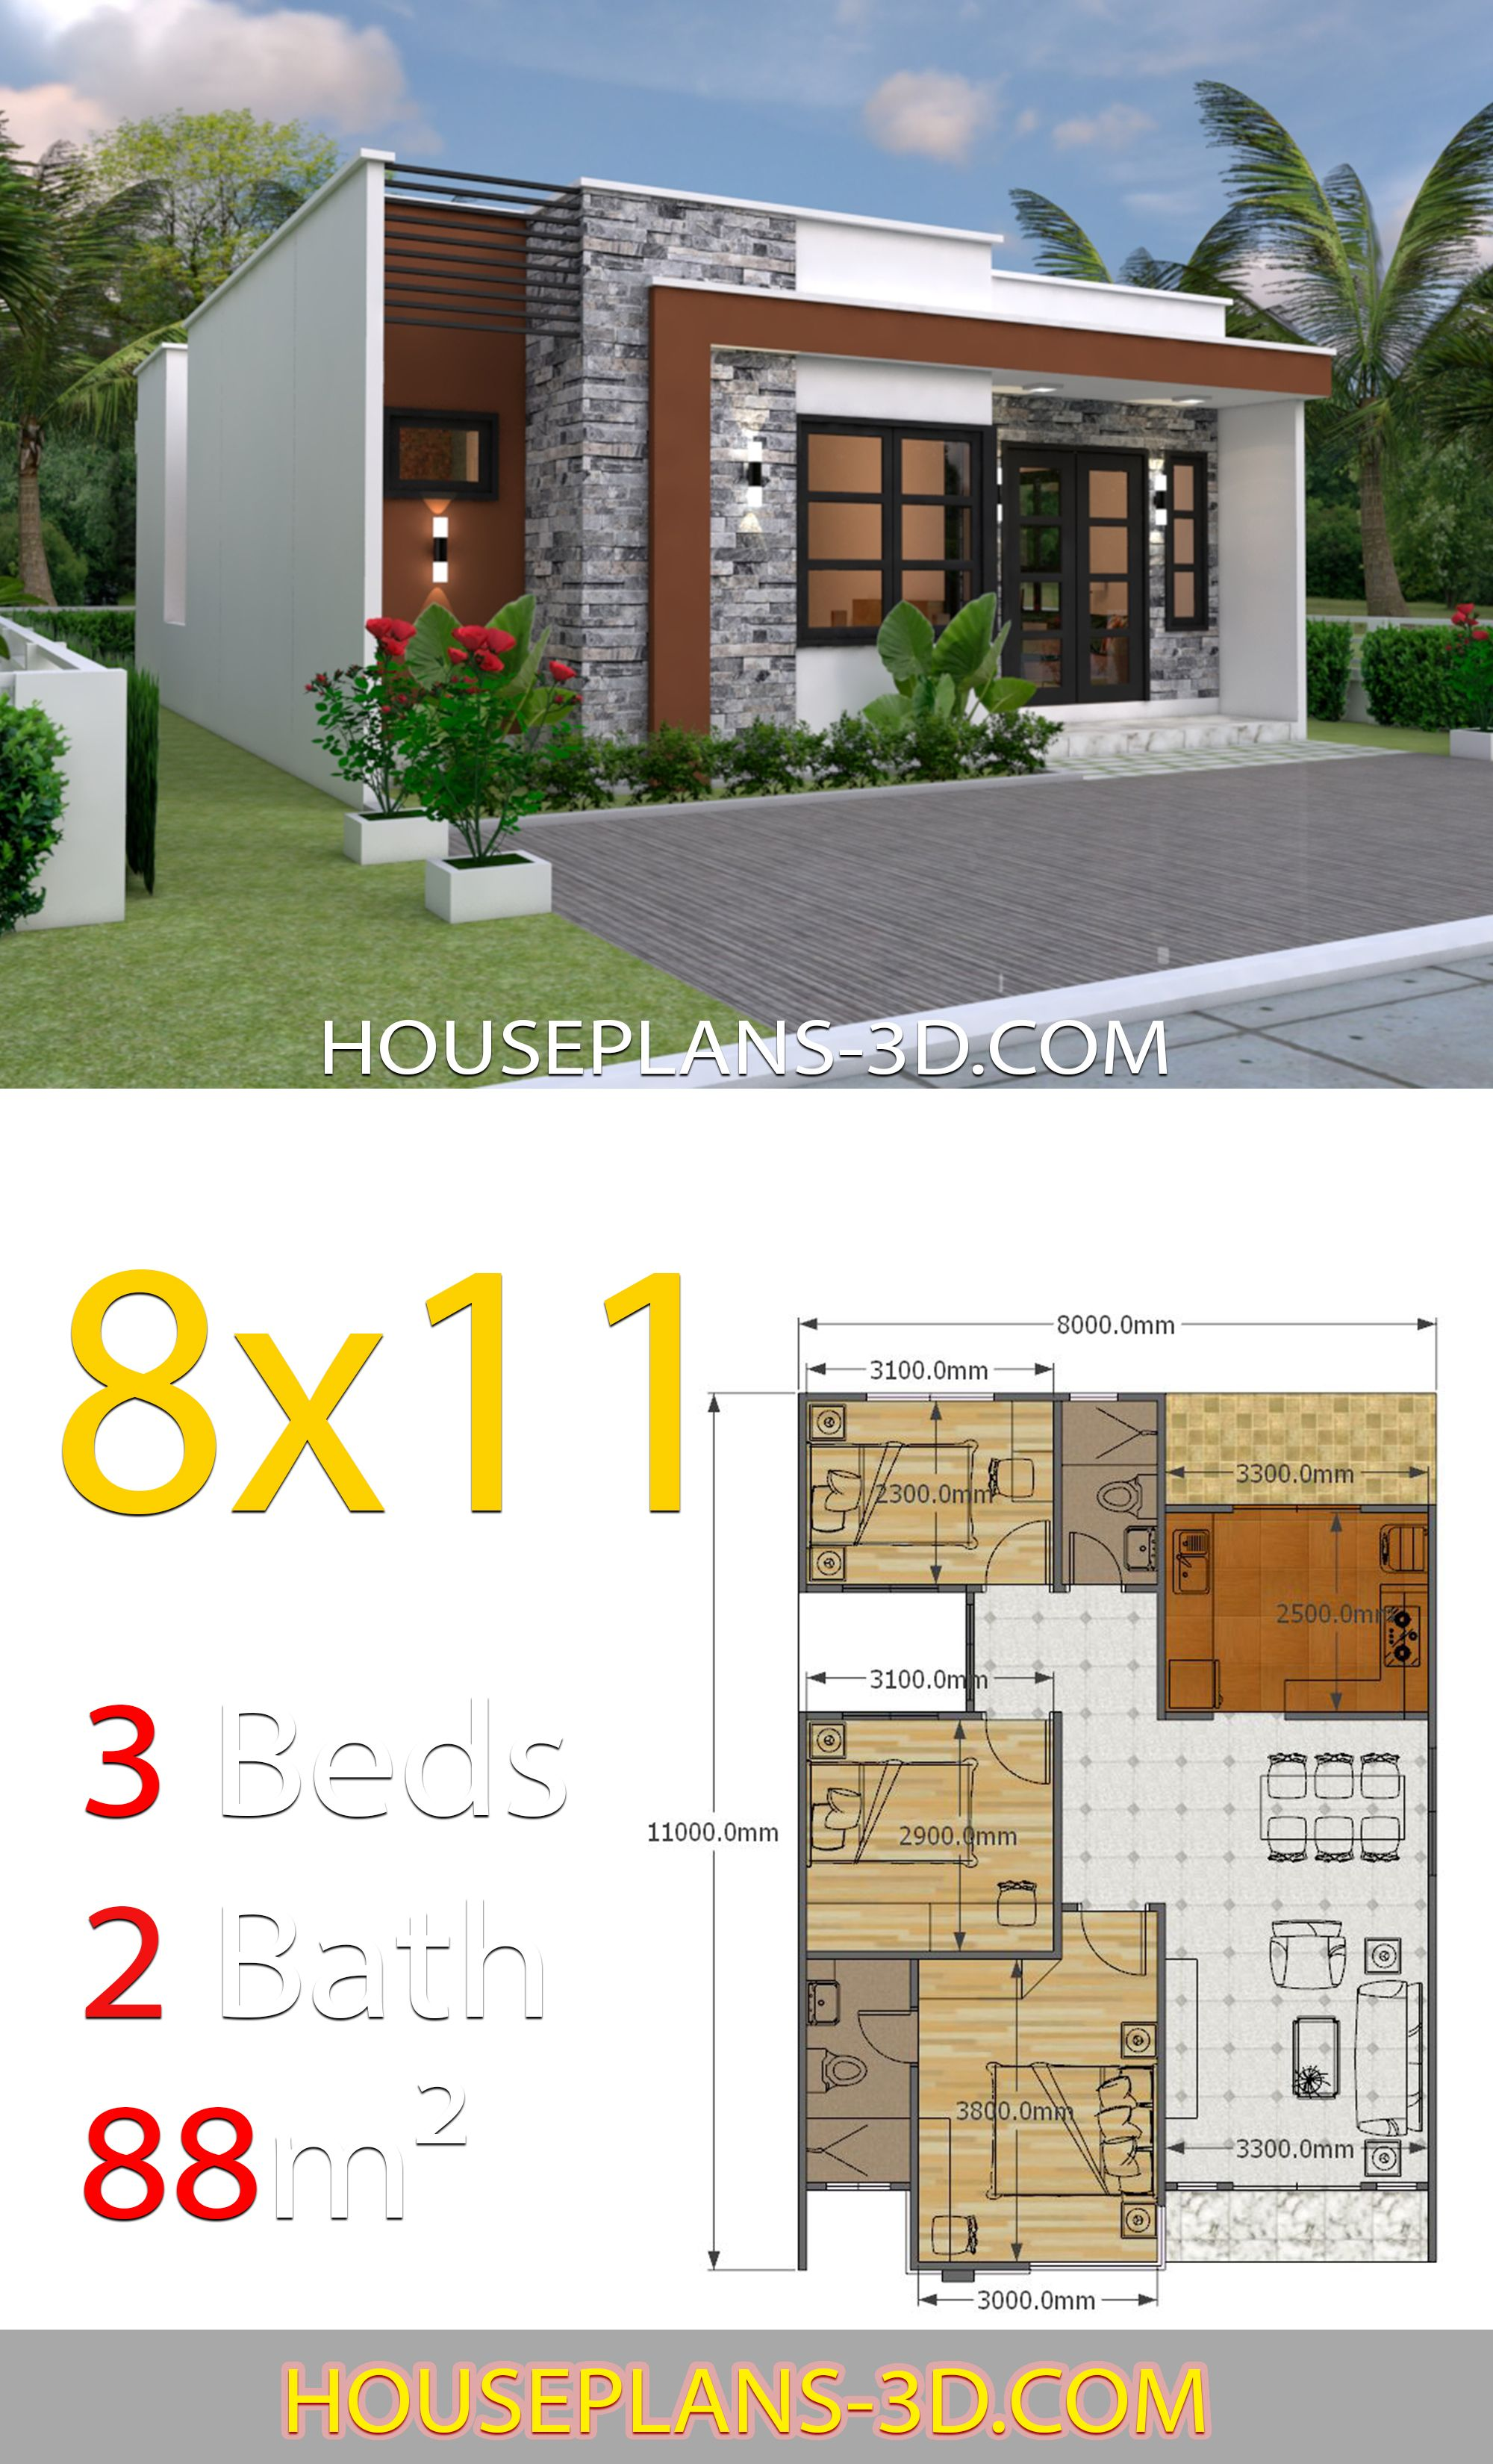 House Design 8x11 With 3 Bedrooms Full Plans House Plans 3d In 2020 House Front Design Small House Design Plans House Construction Plan